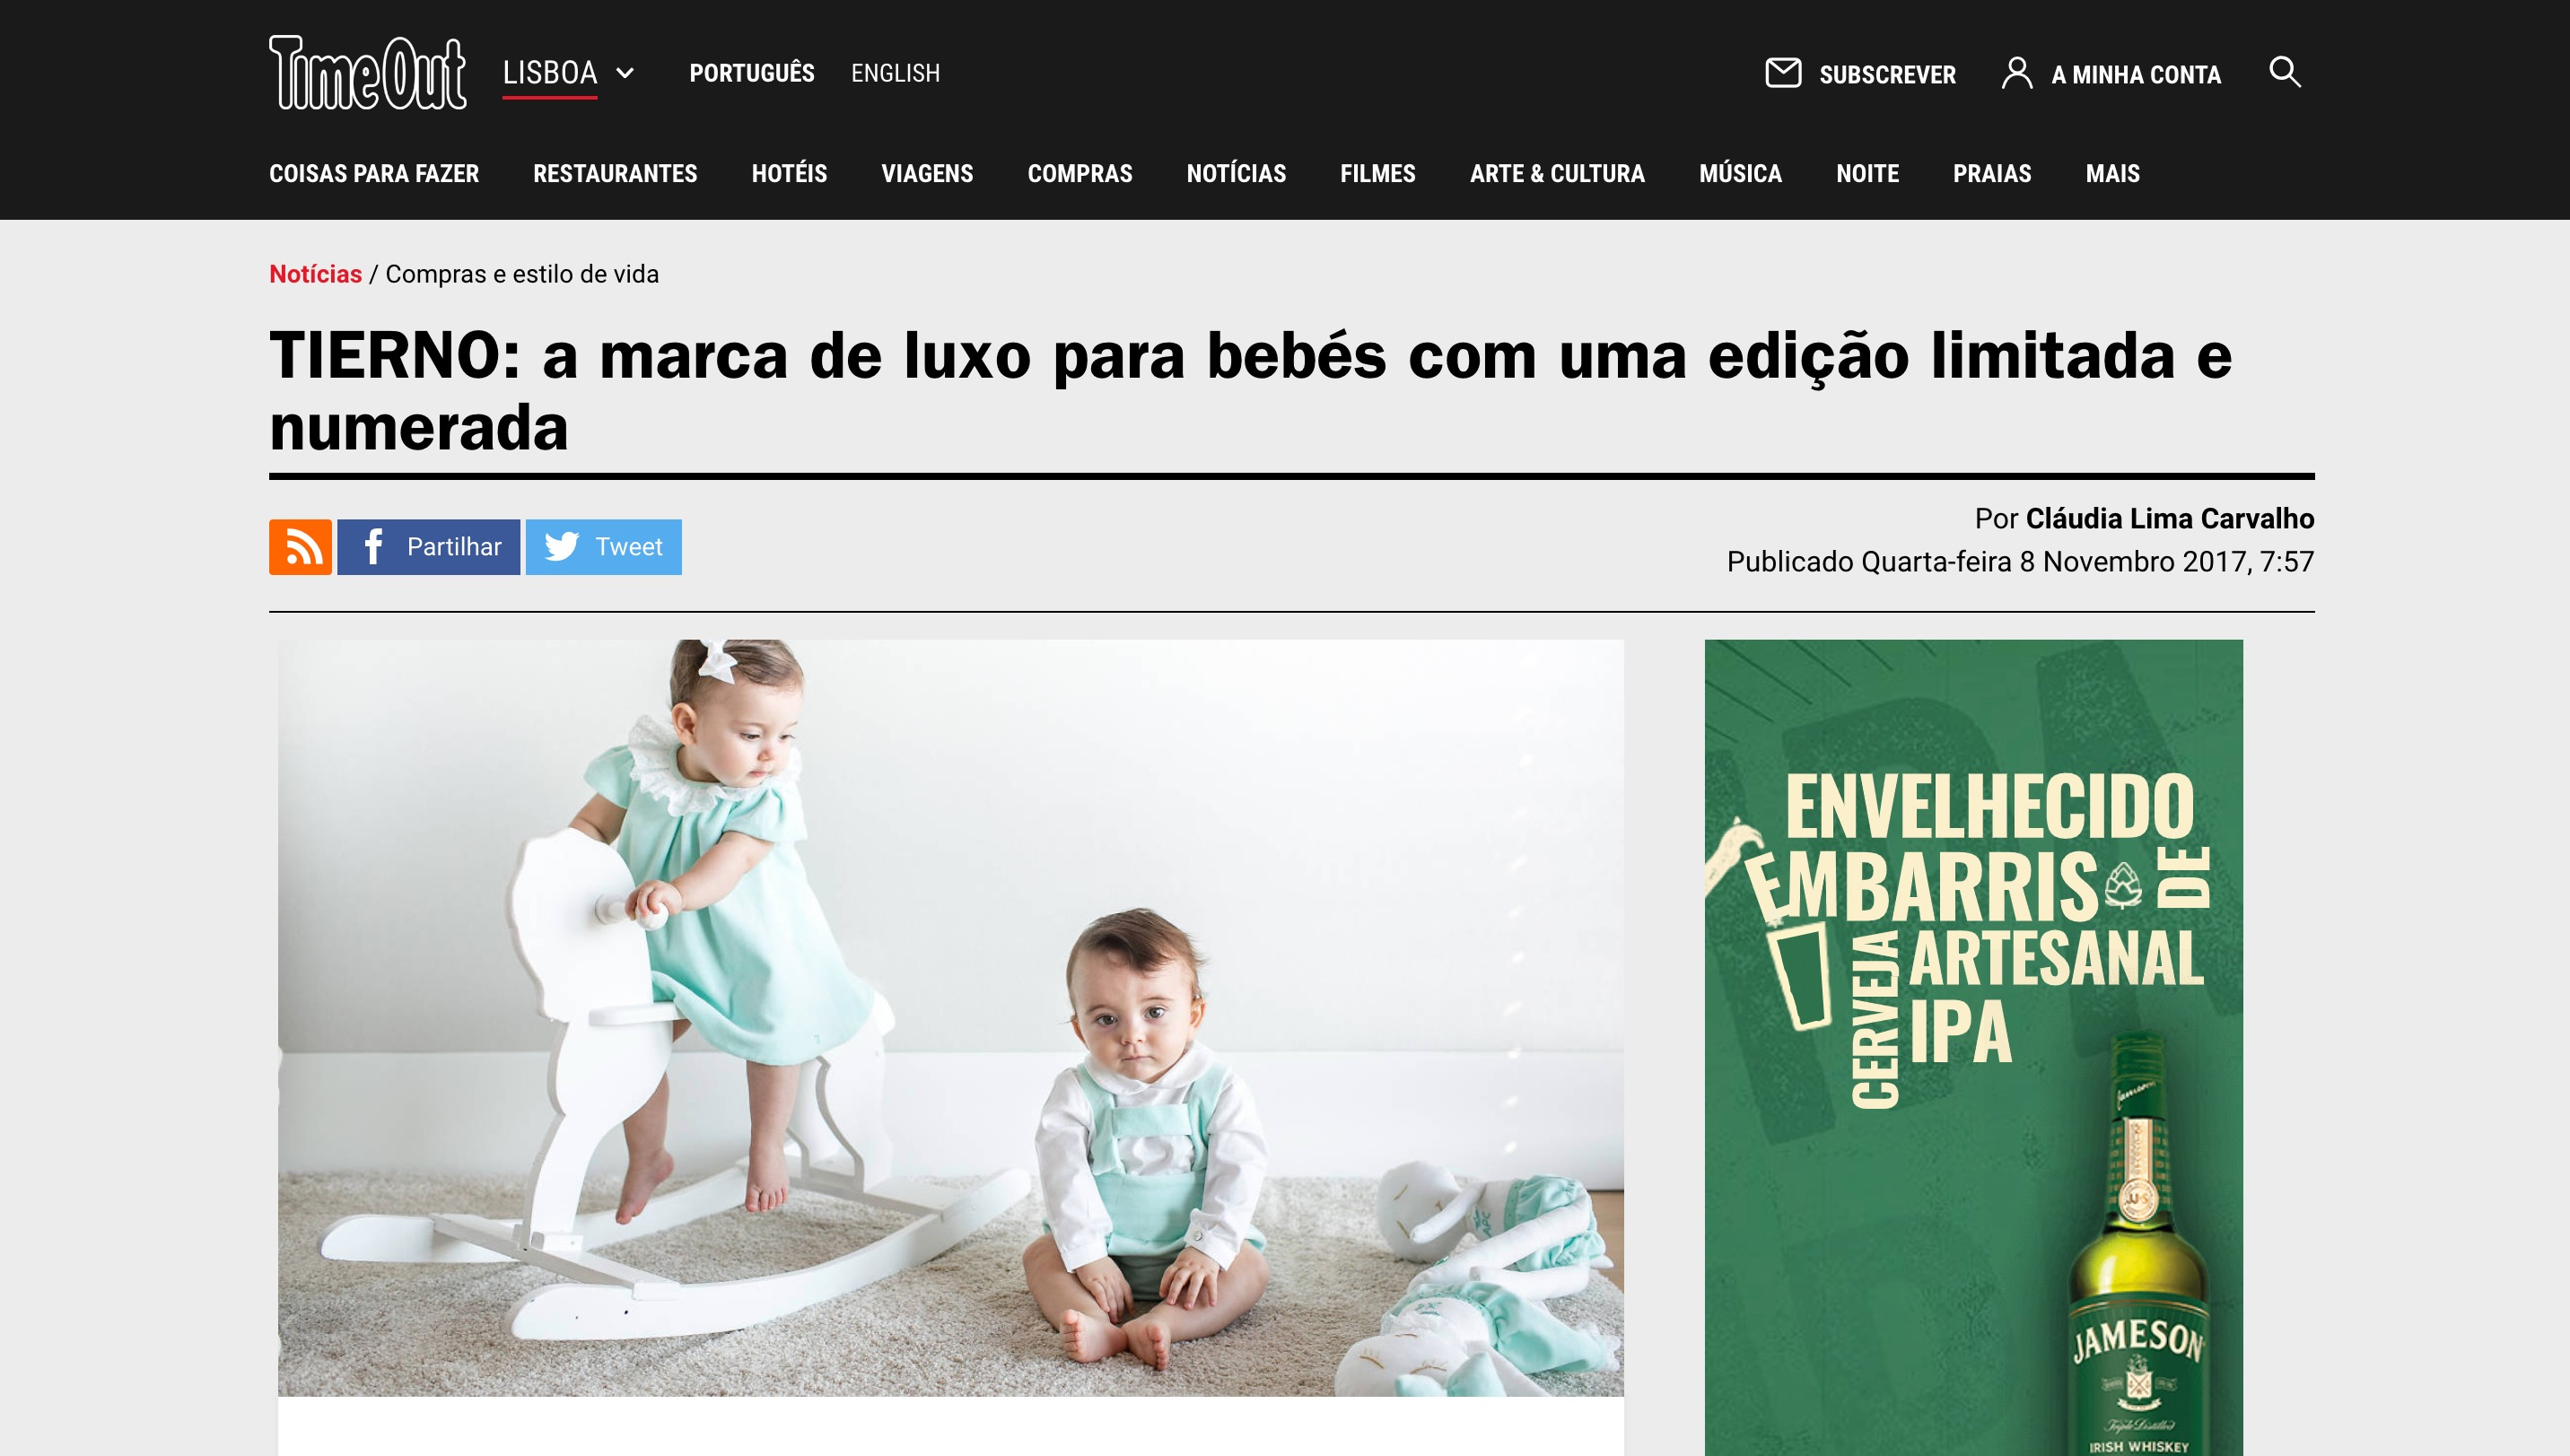 TIERNO LIMITED EDITION IN TIMEOUT LISBOA